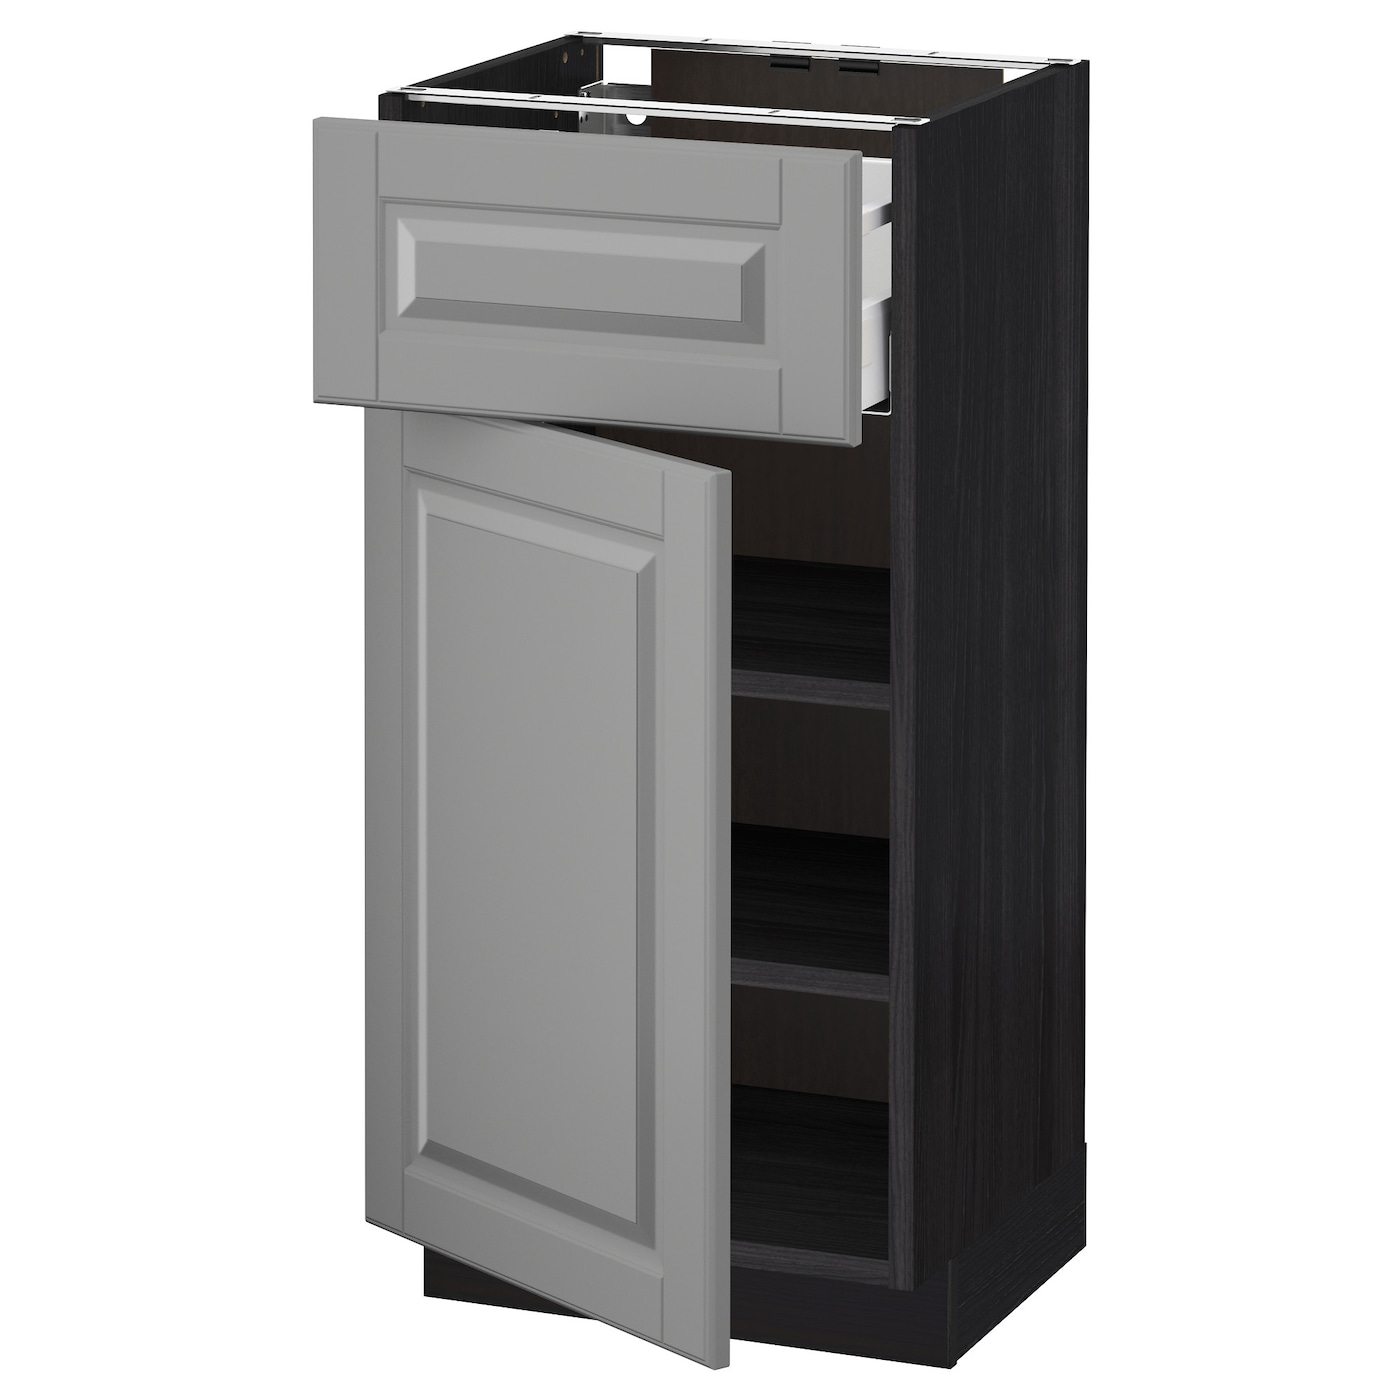 black kitchen base cabinets metod maximera base cabinet with drawer door black bodbyn 12375